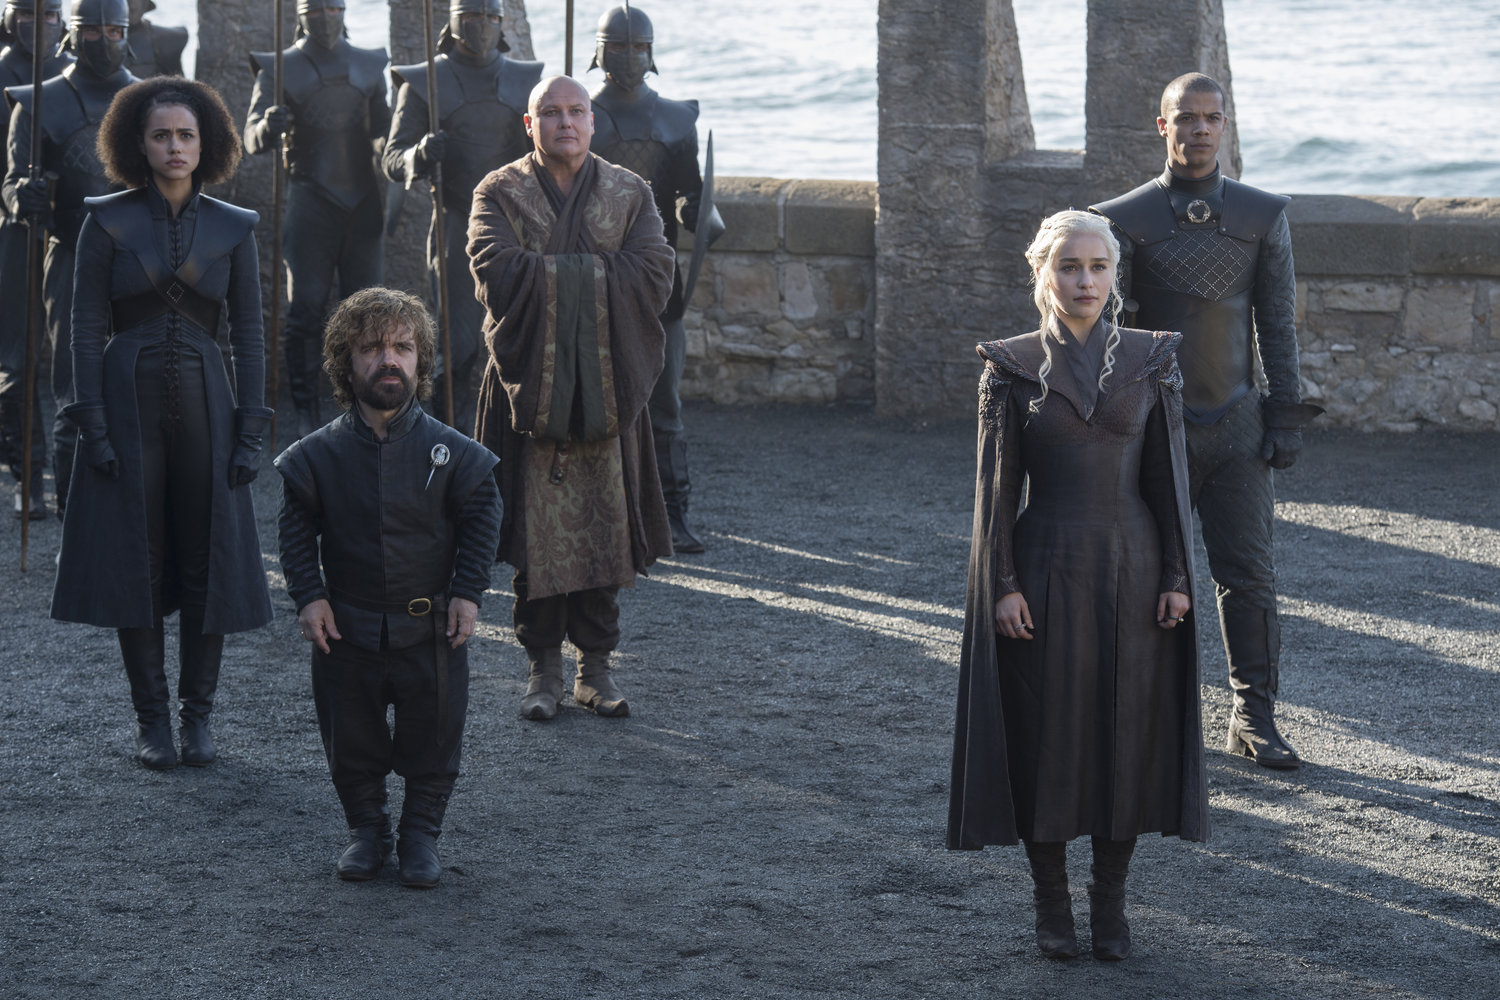 'Game of Thrones': HBO Currently Developing 4 Different Spinoffs